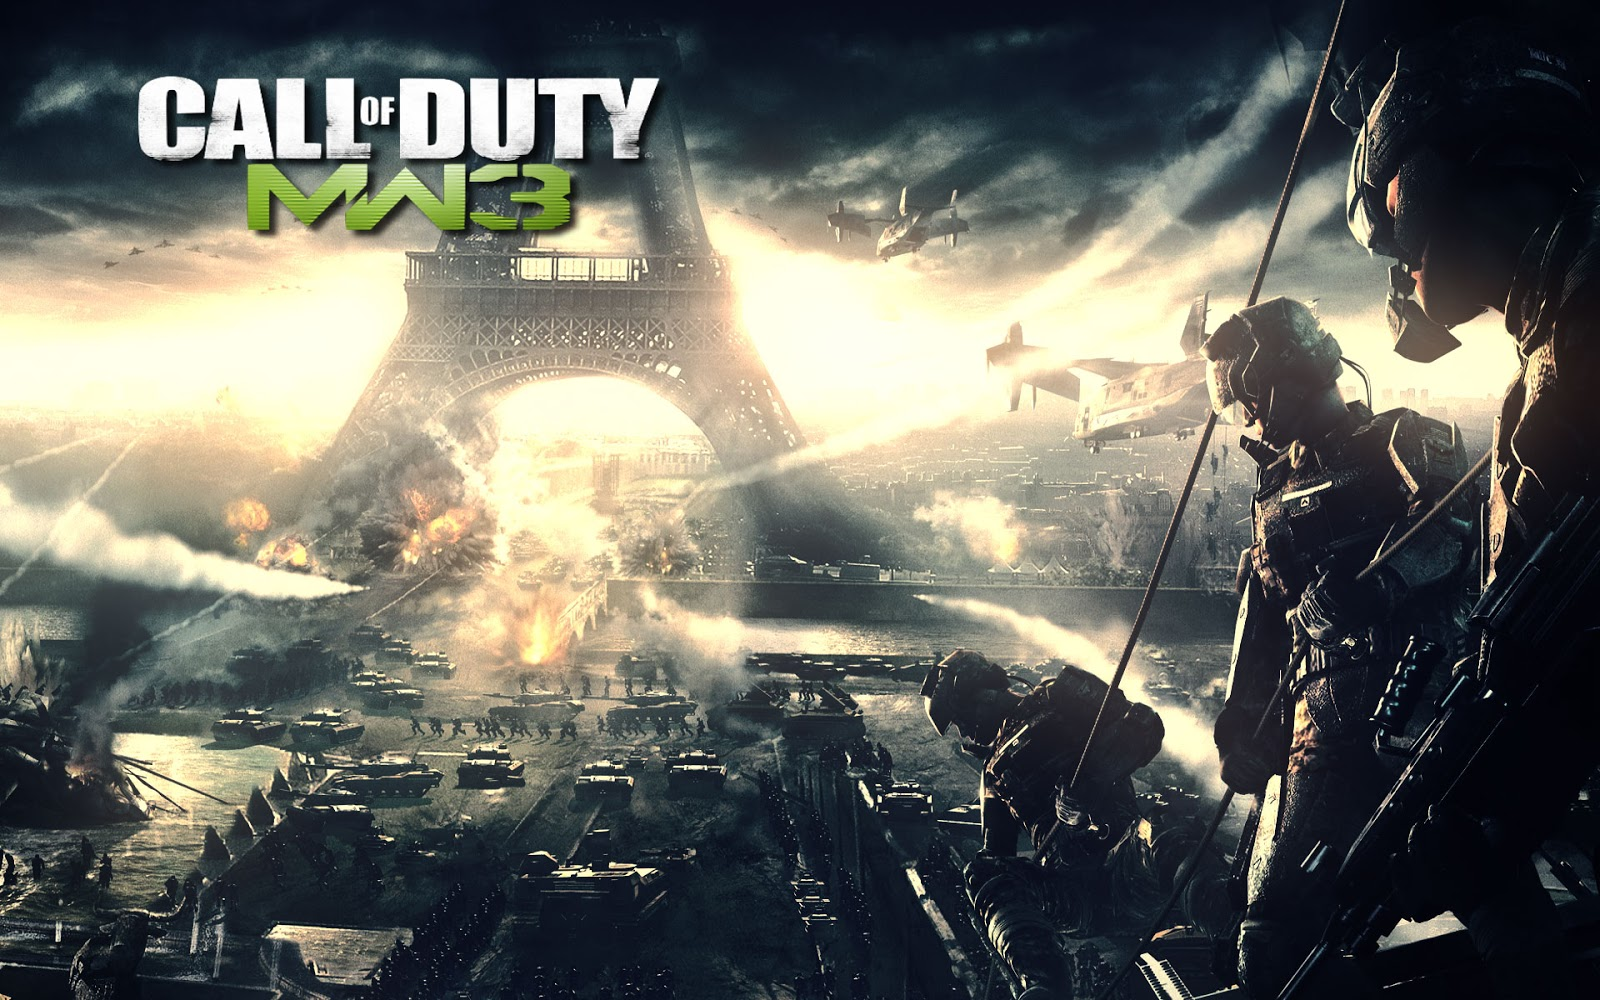 http://1.bp.blogspot.com/-xXM2rNBDfVc/UNSrLbrqLxI/AAAAAAAAAPY/SBrS3dfNWvs/s1600/call+of+duty+modern+warfare+3+hd+wallpapers+(3).jpg